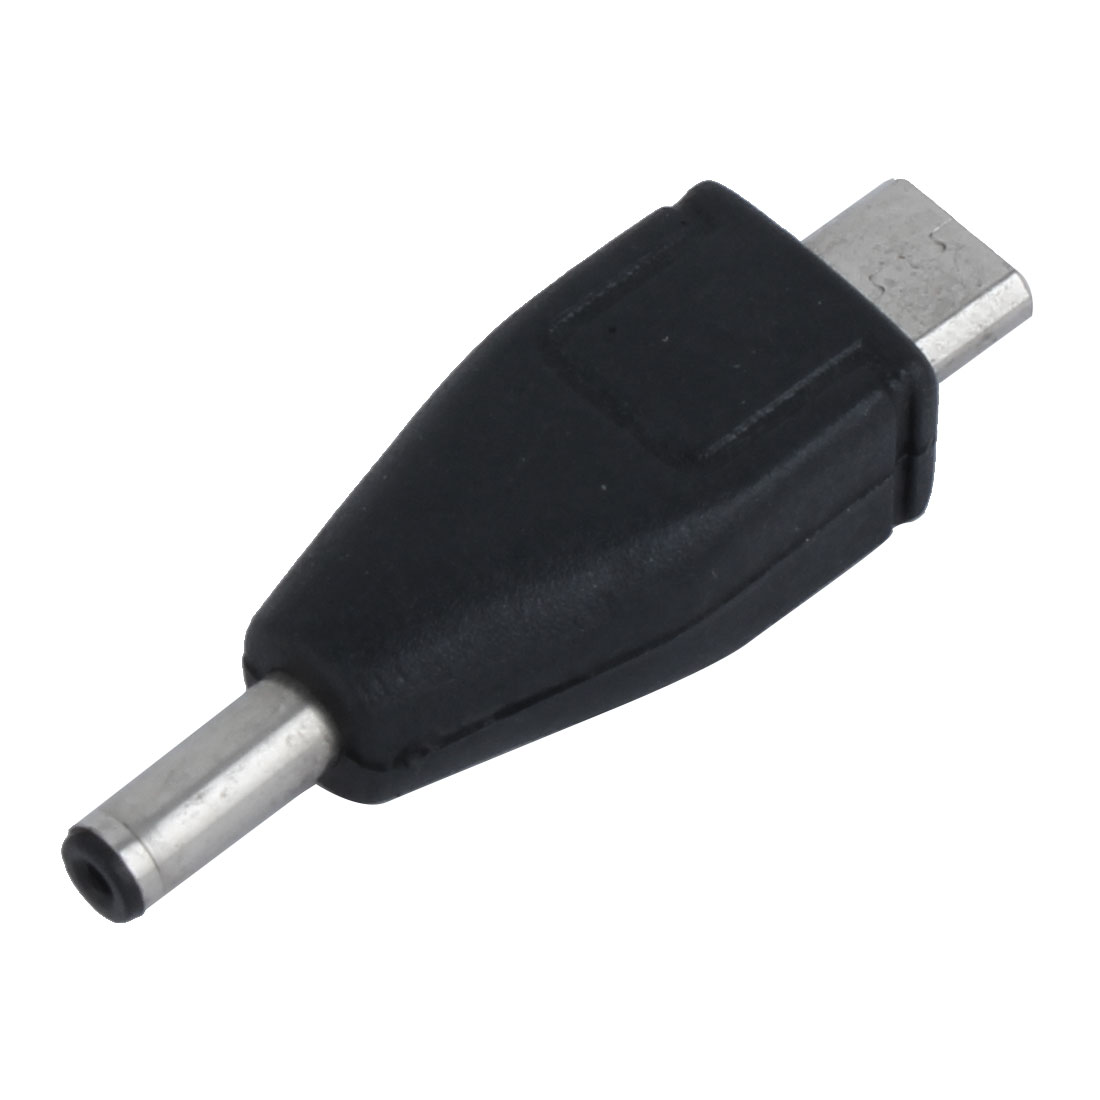 DC 3.5mm Power Adapter to Micro USB 5 Pins Male Connector